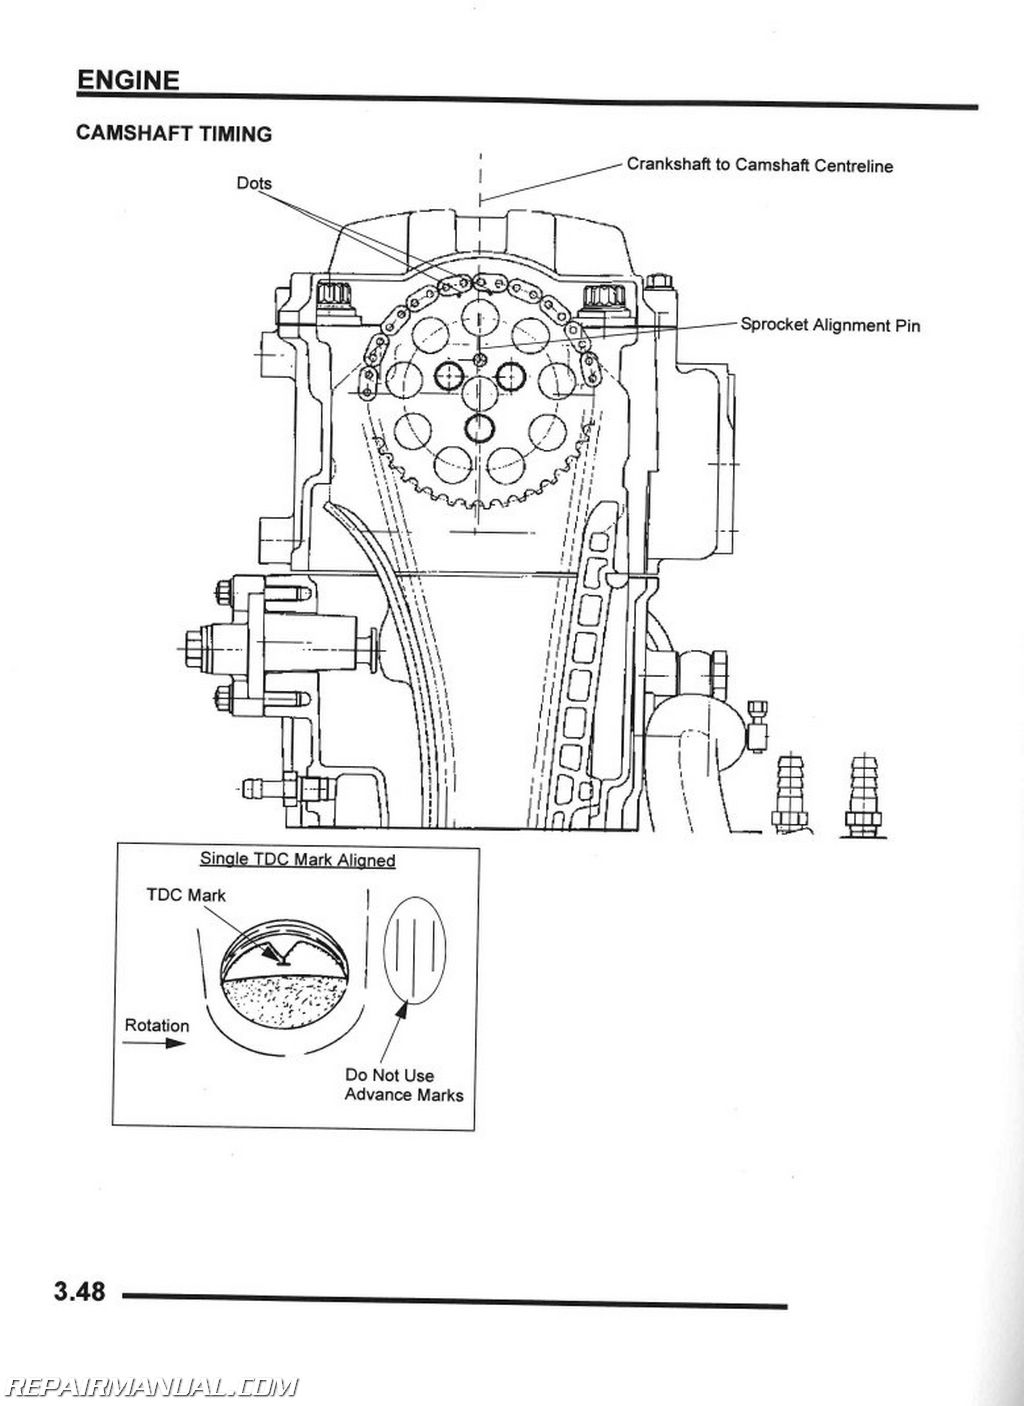 Wiring Diagram 2004 Polaris Magnum 330. Diagram. Wiring